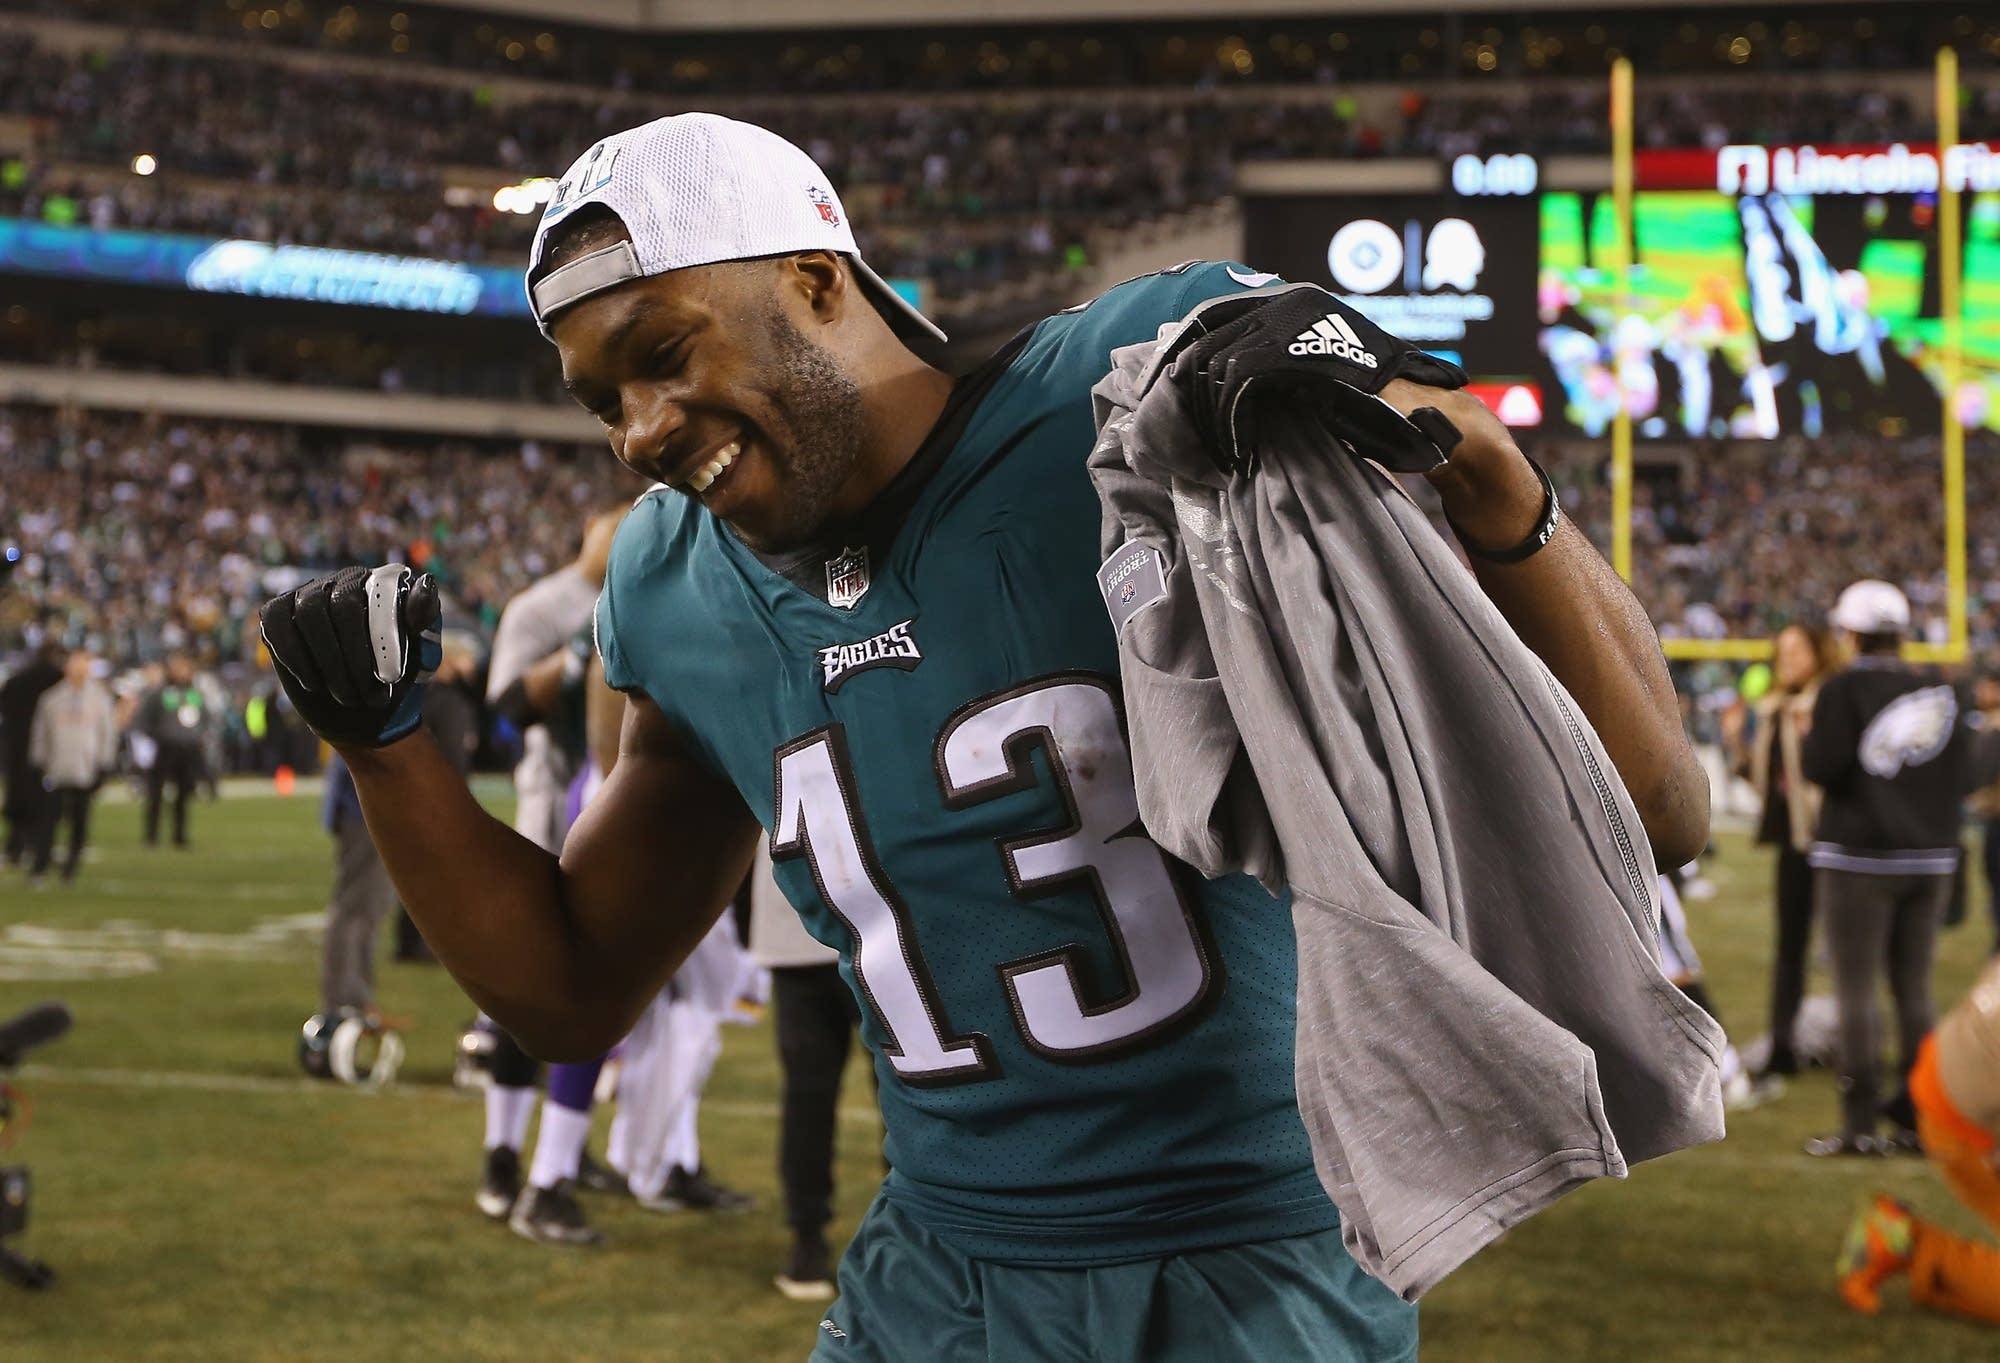 Nelson Agholor (13) of the Philadelphia Eagles celebrates his team's win.